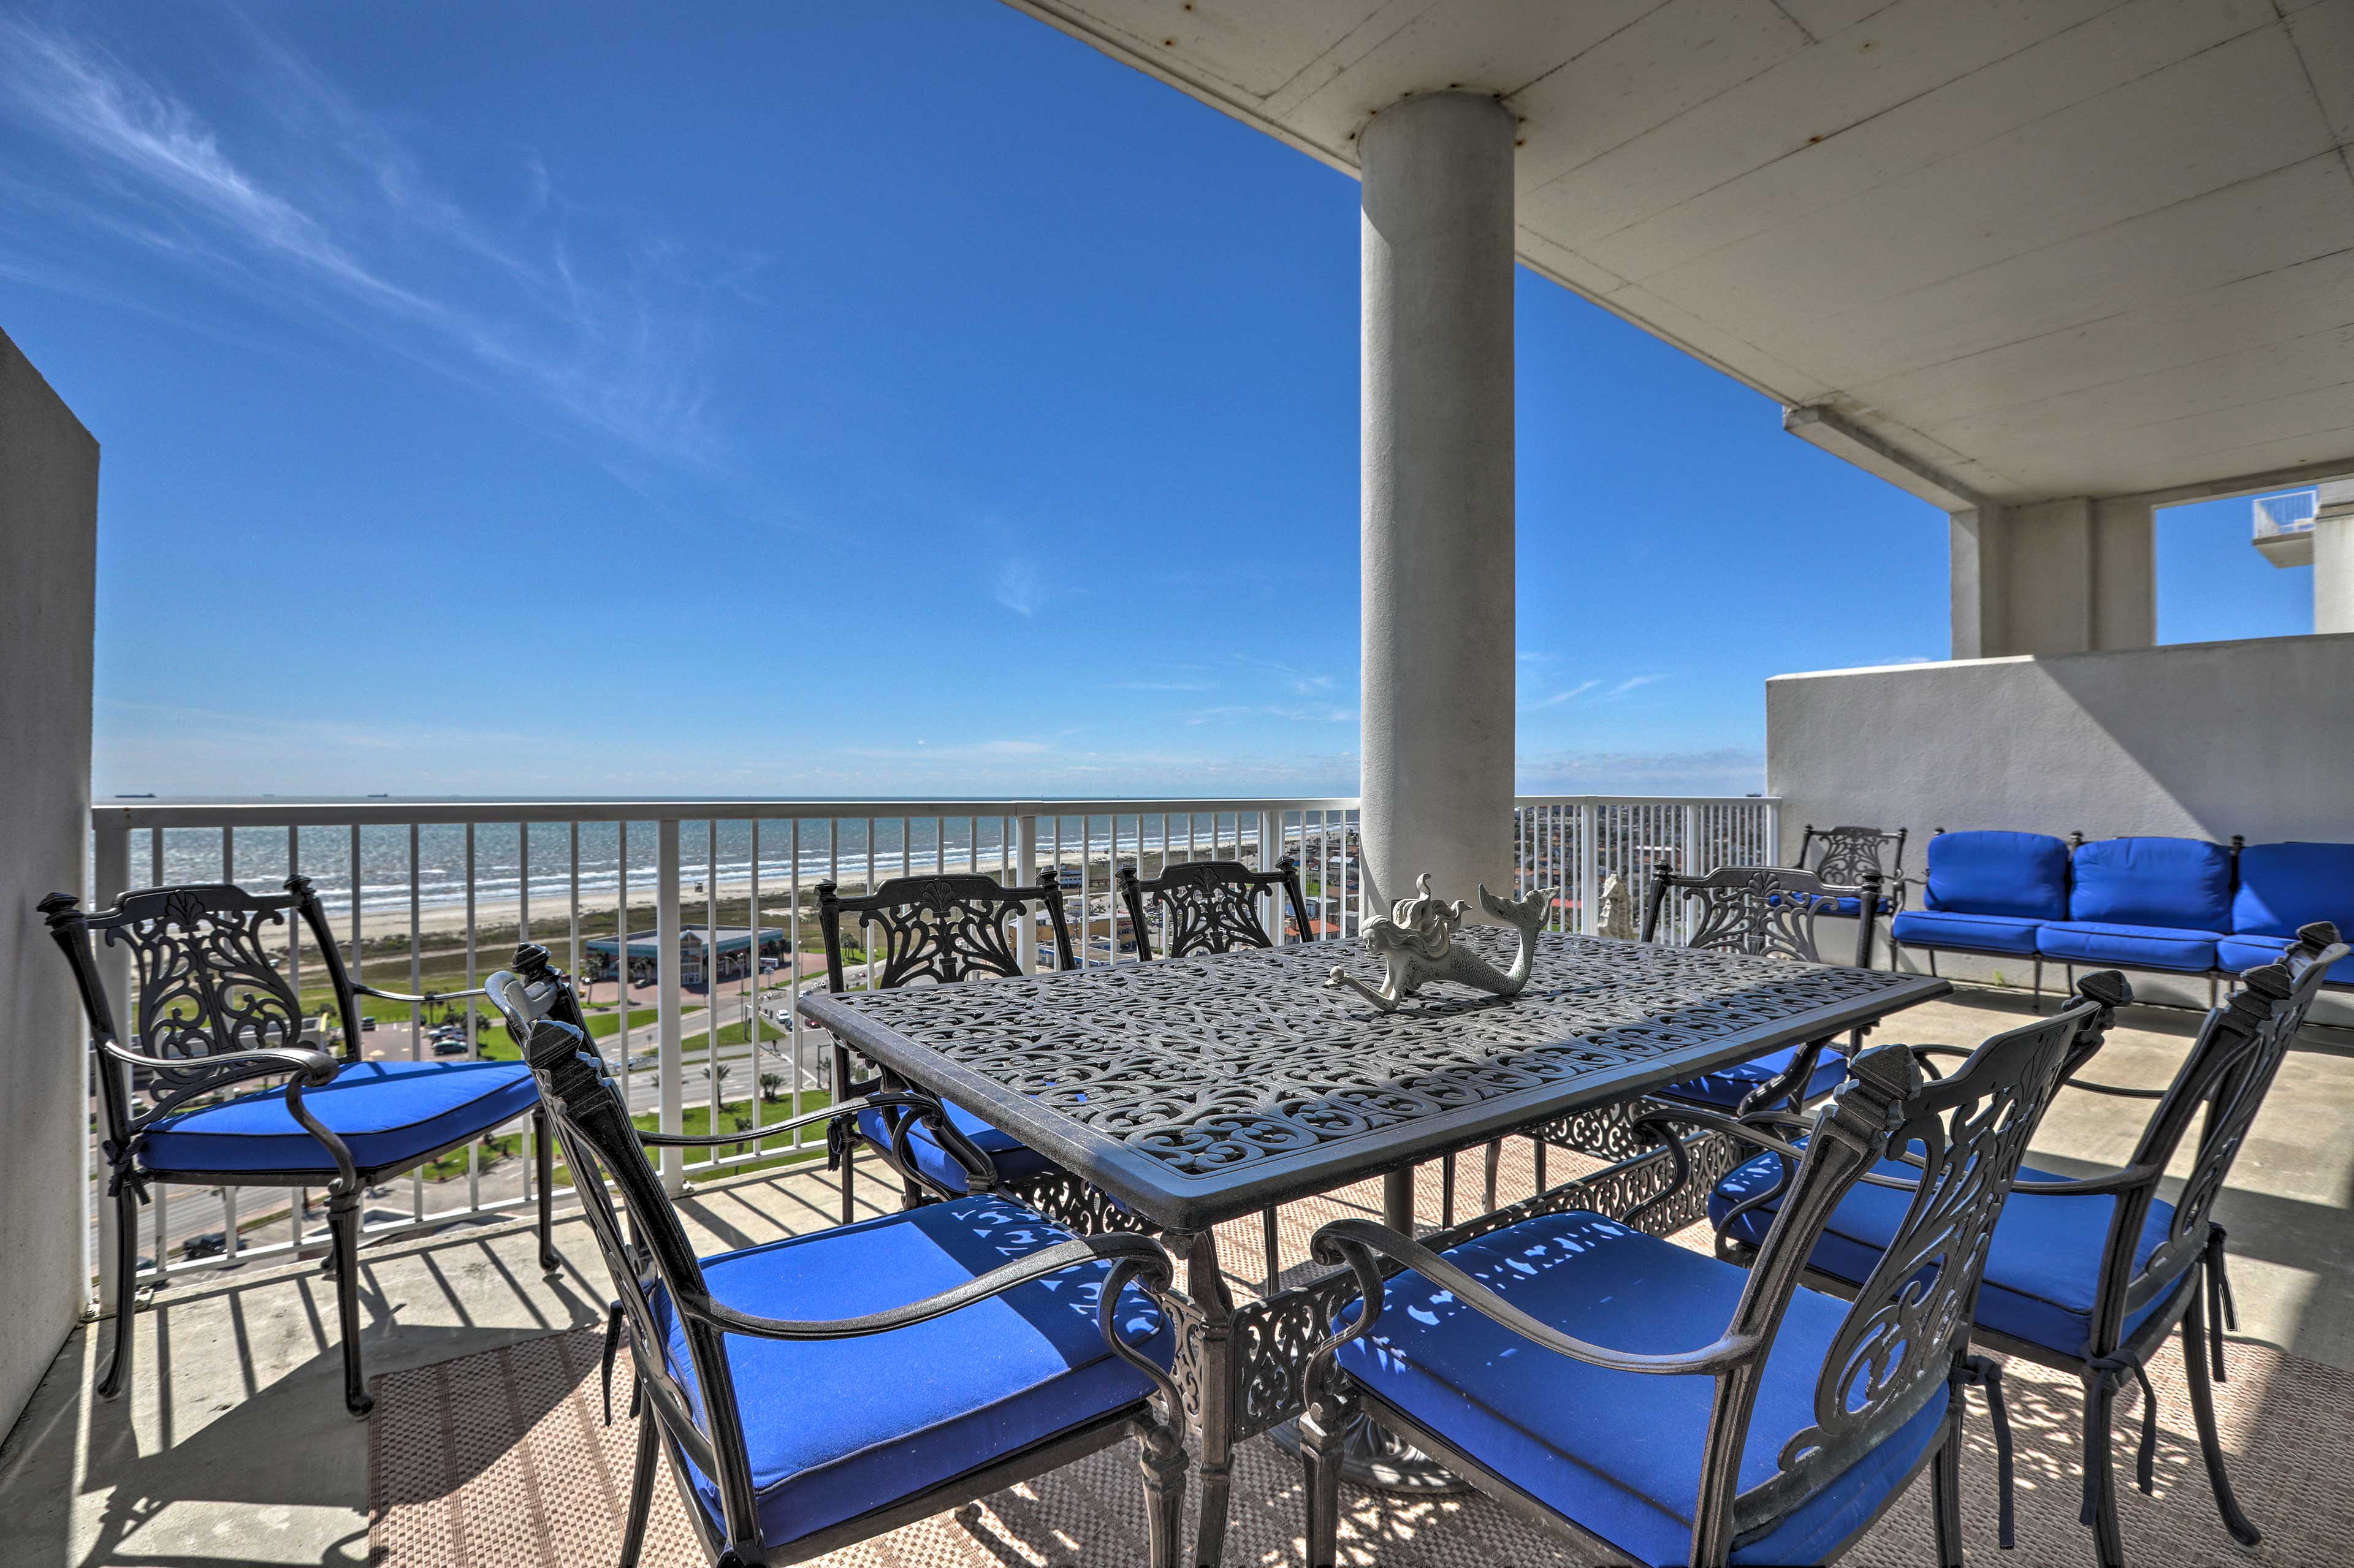 Escape to this beautiful 3-bedroom, 2-bathroom vacation rental home on the Gulf!